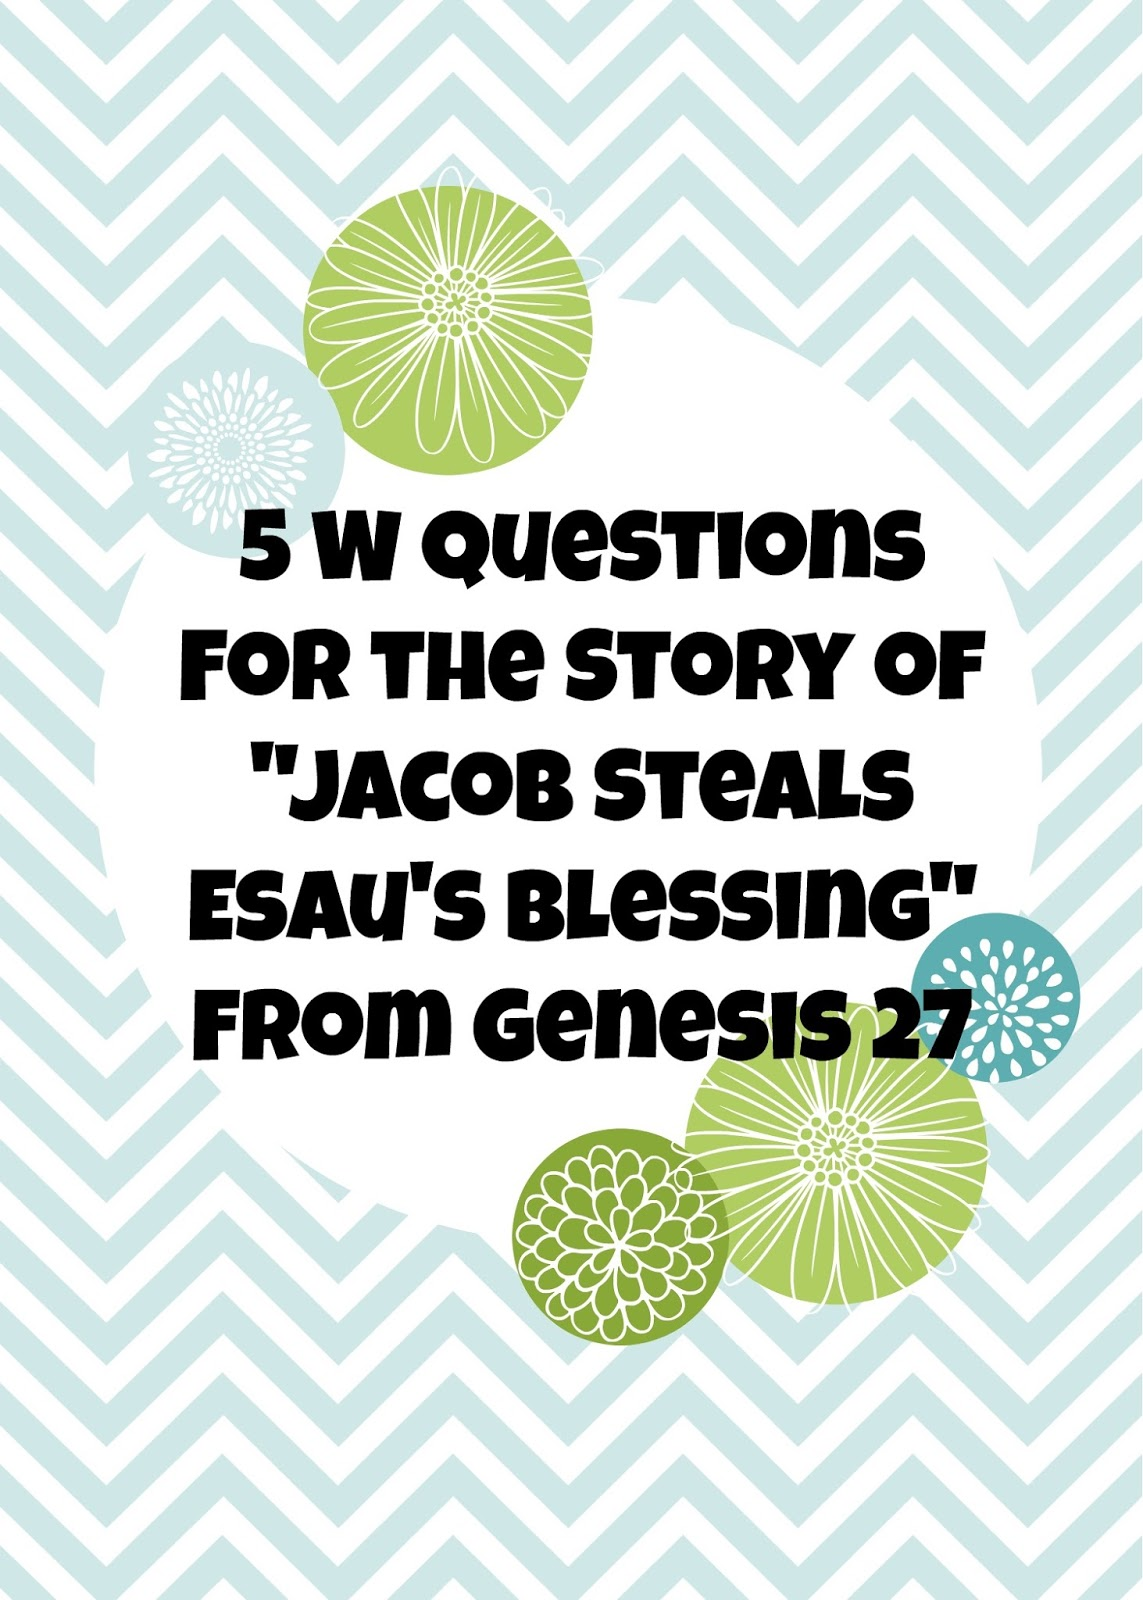 bible lessons for kids 5 w questions for the story of